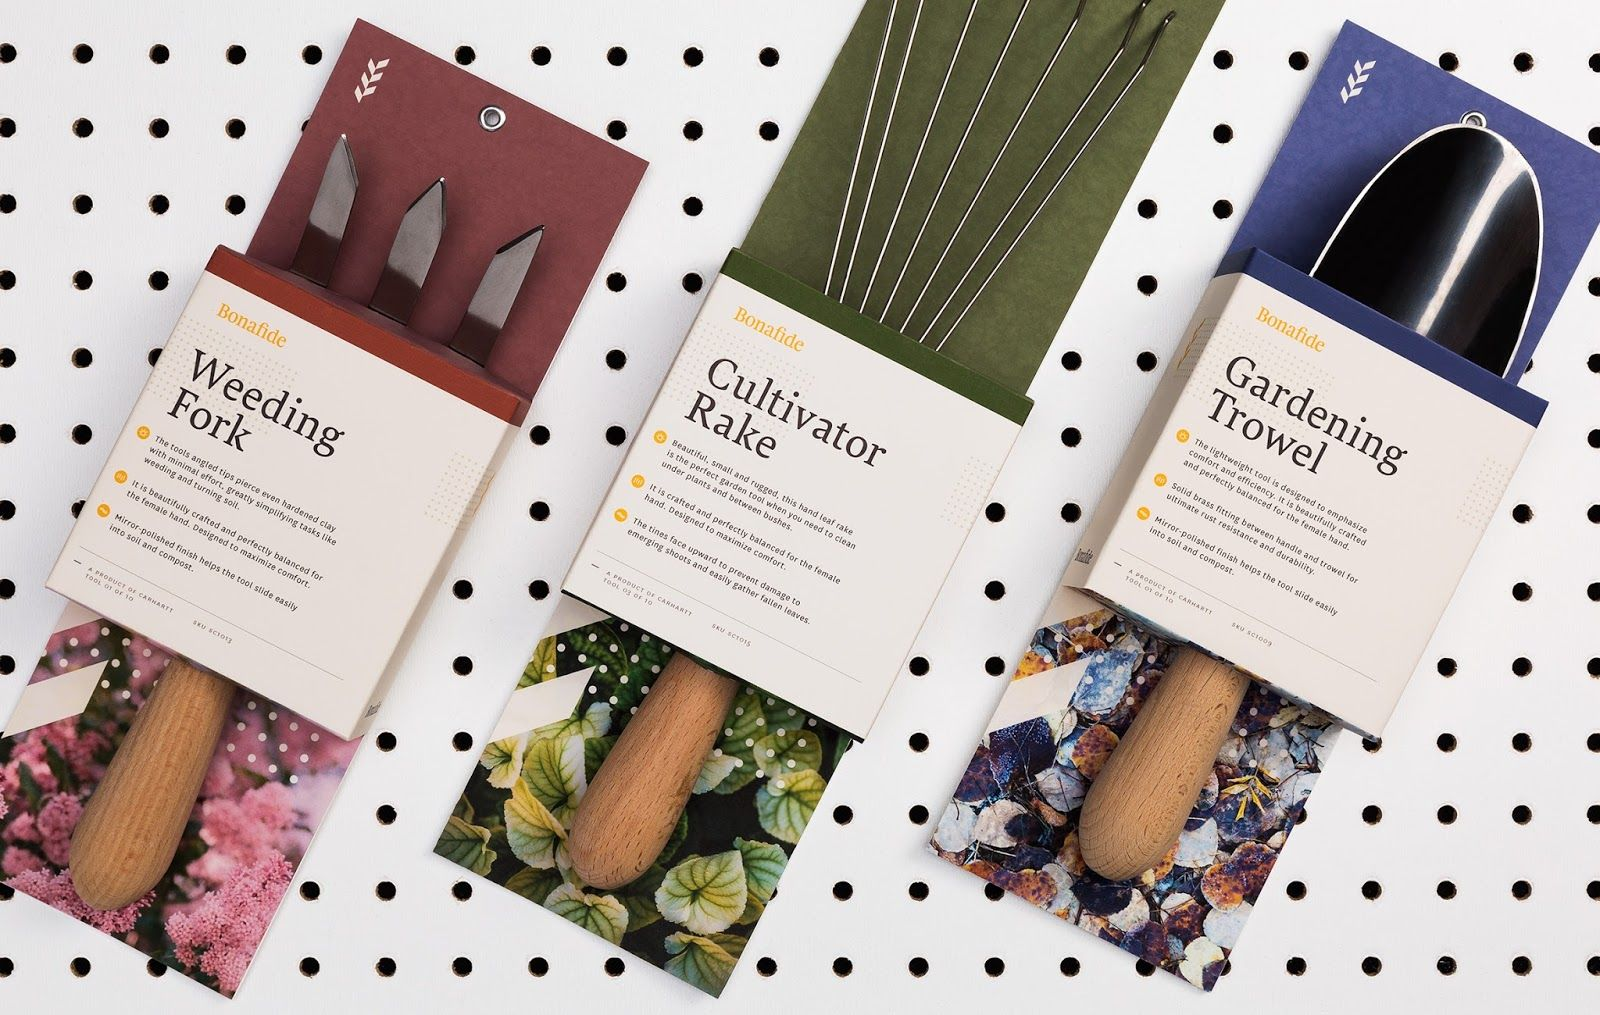 Image Result For Tool Packaging With Images Garden Tools